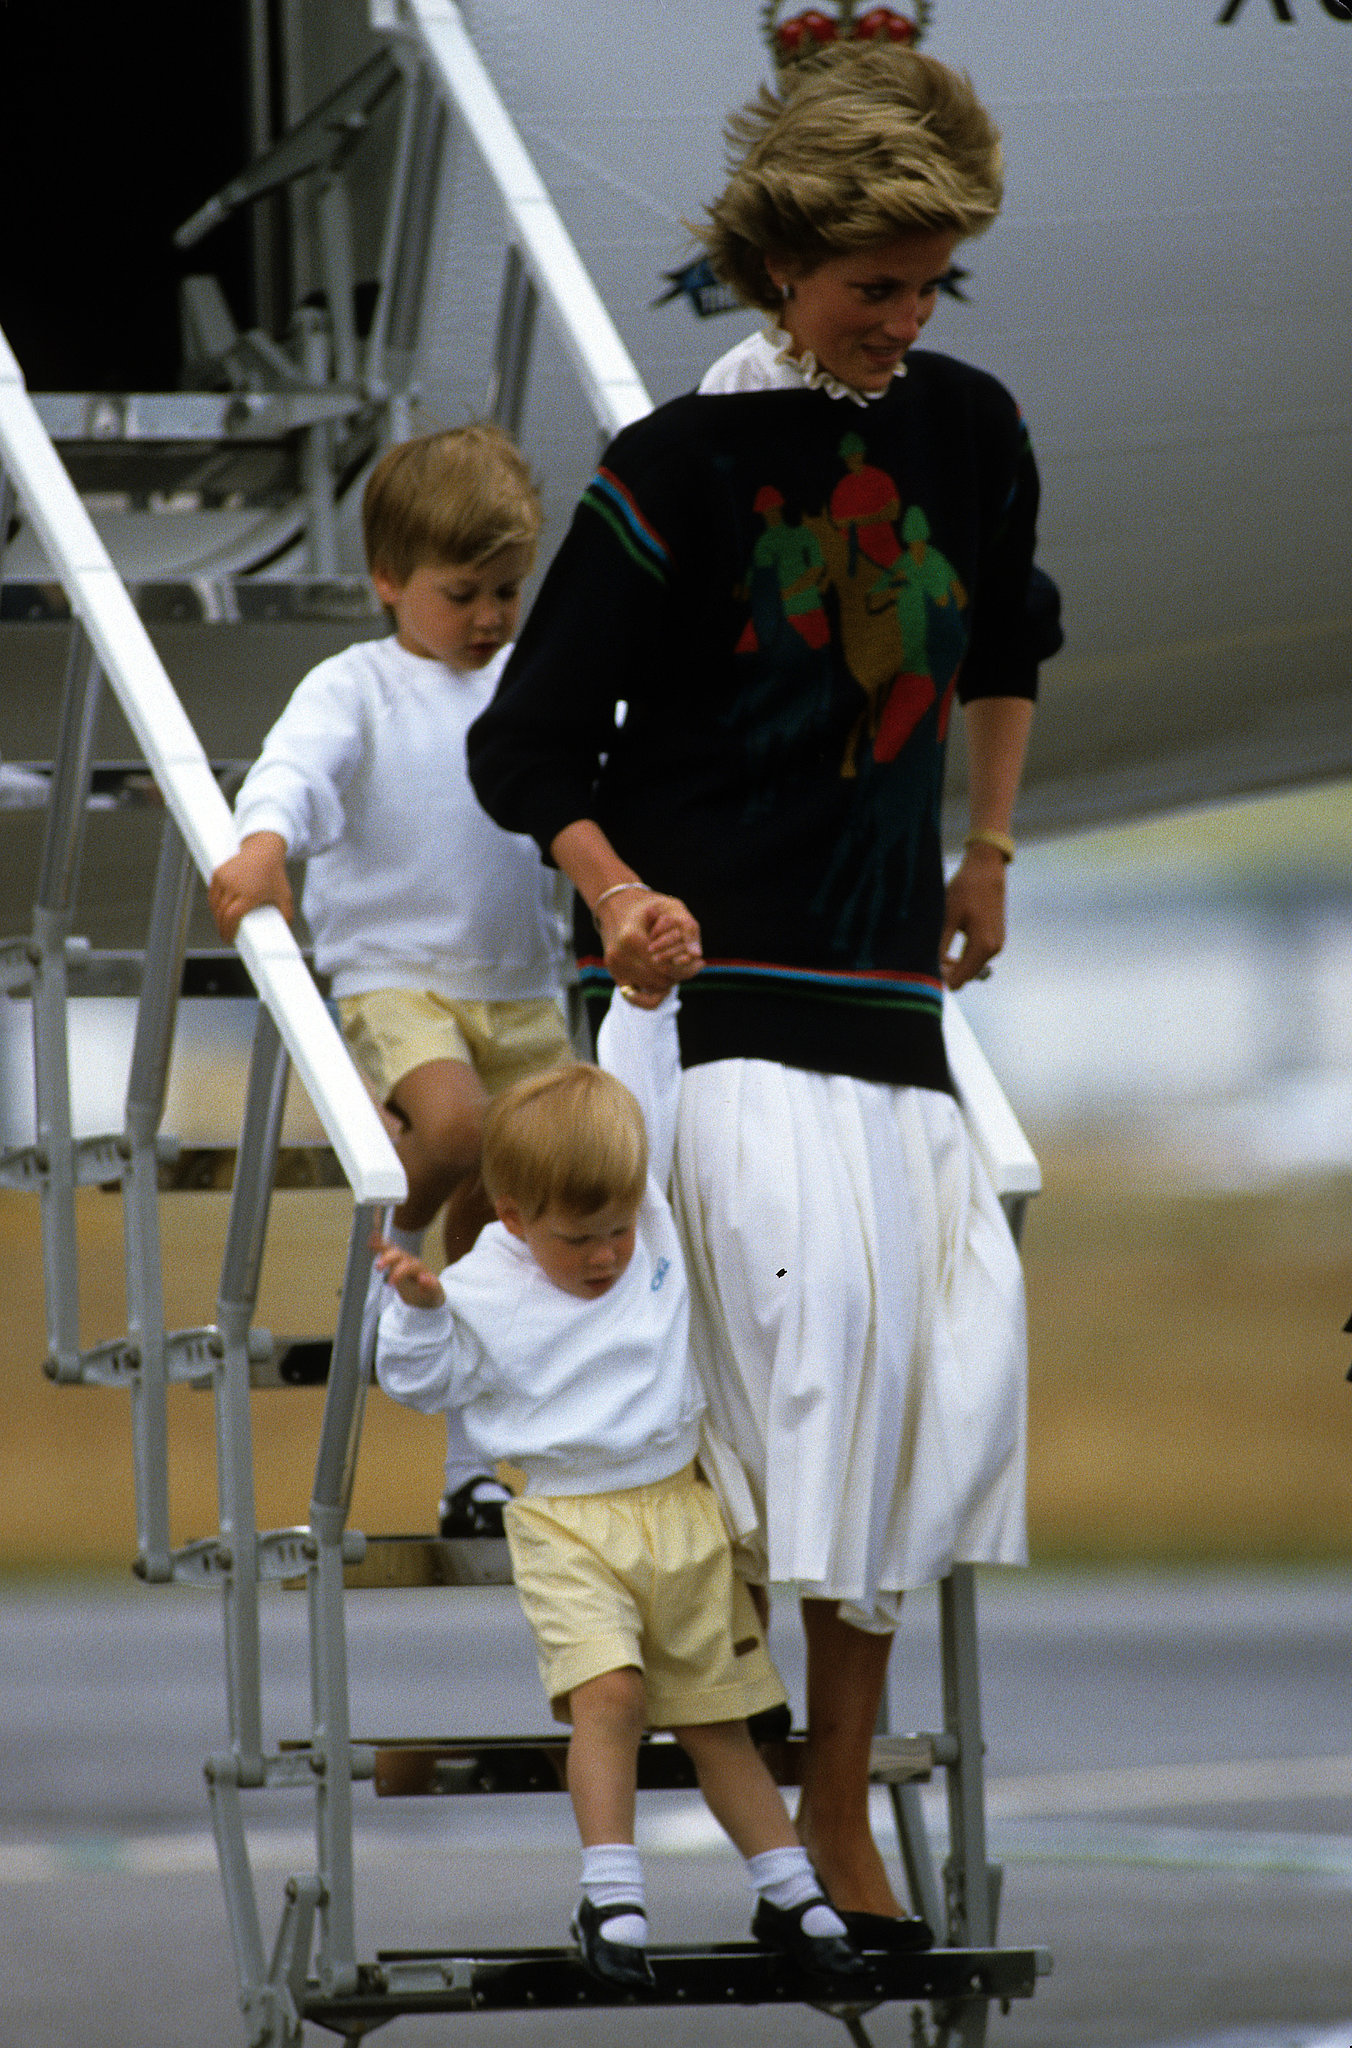 Prince Harry showed off his walking skills as he departed a plane in Scotland in 1986.